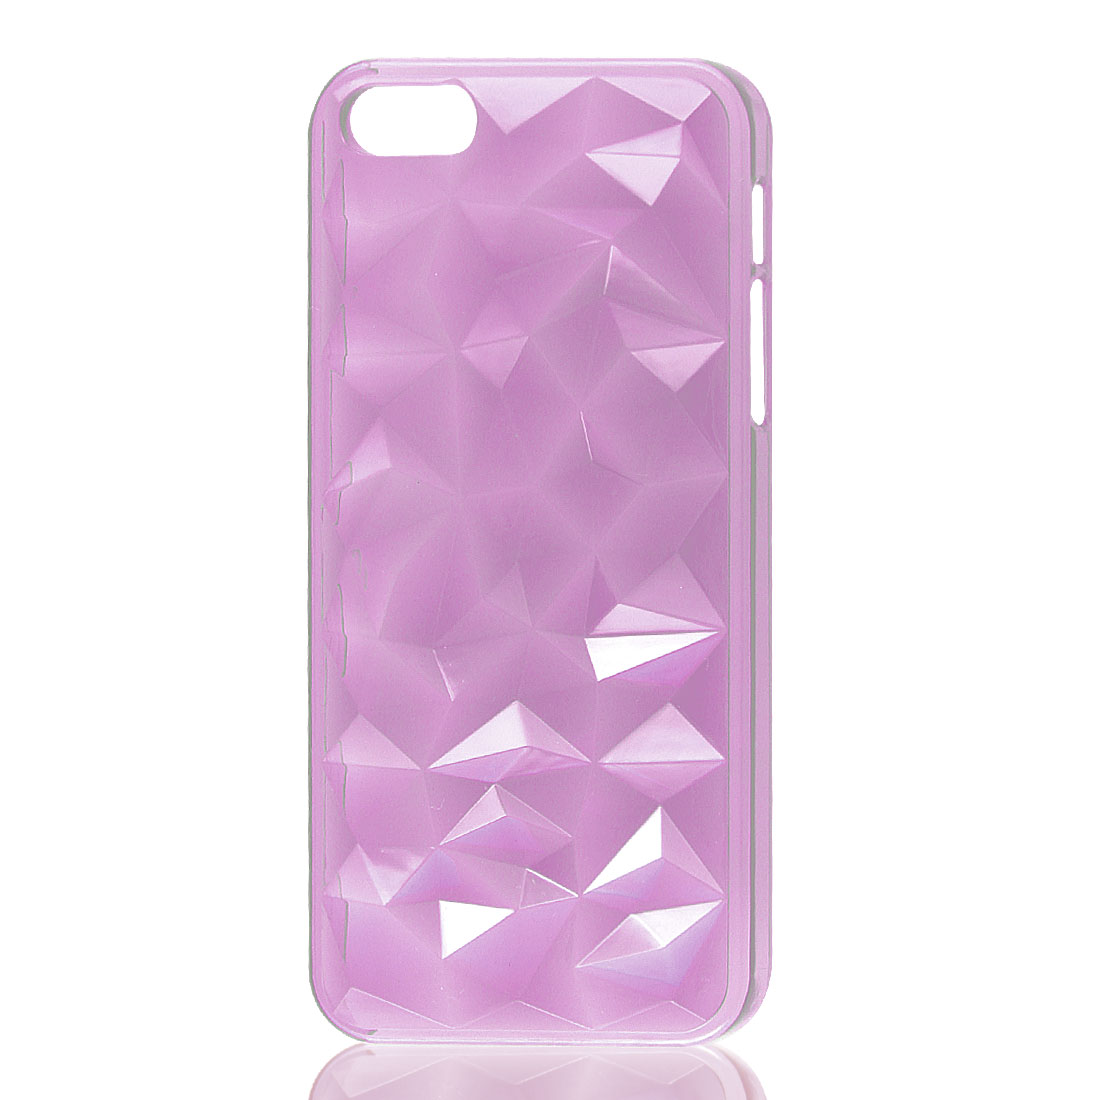 3D Water Cube Clear Fuchsia Hard Back Case Cover Protector for iPhone 5 5G